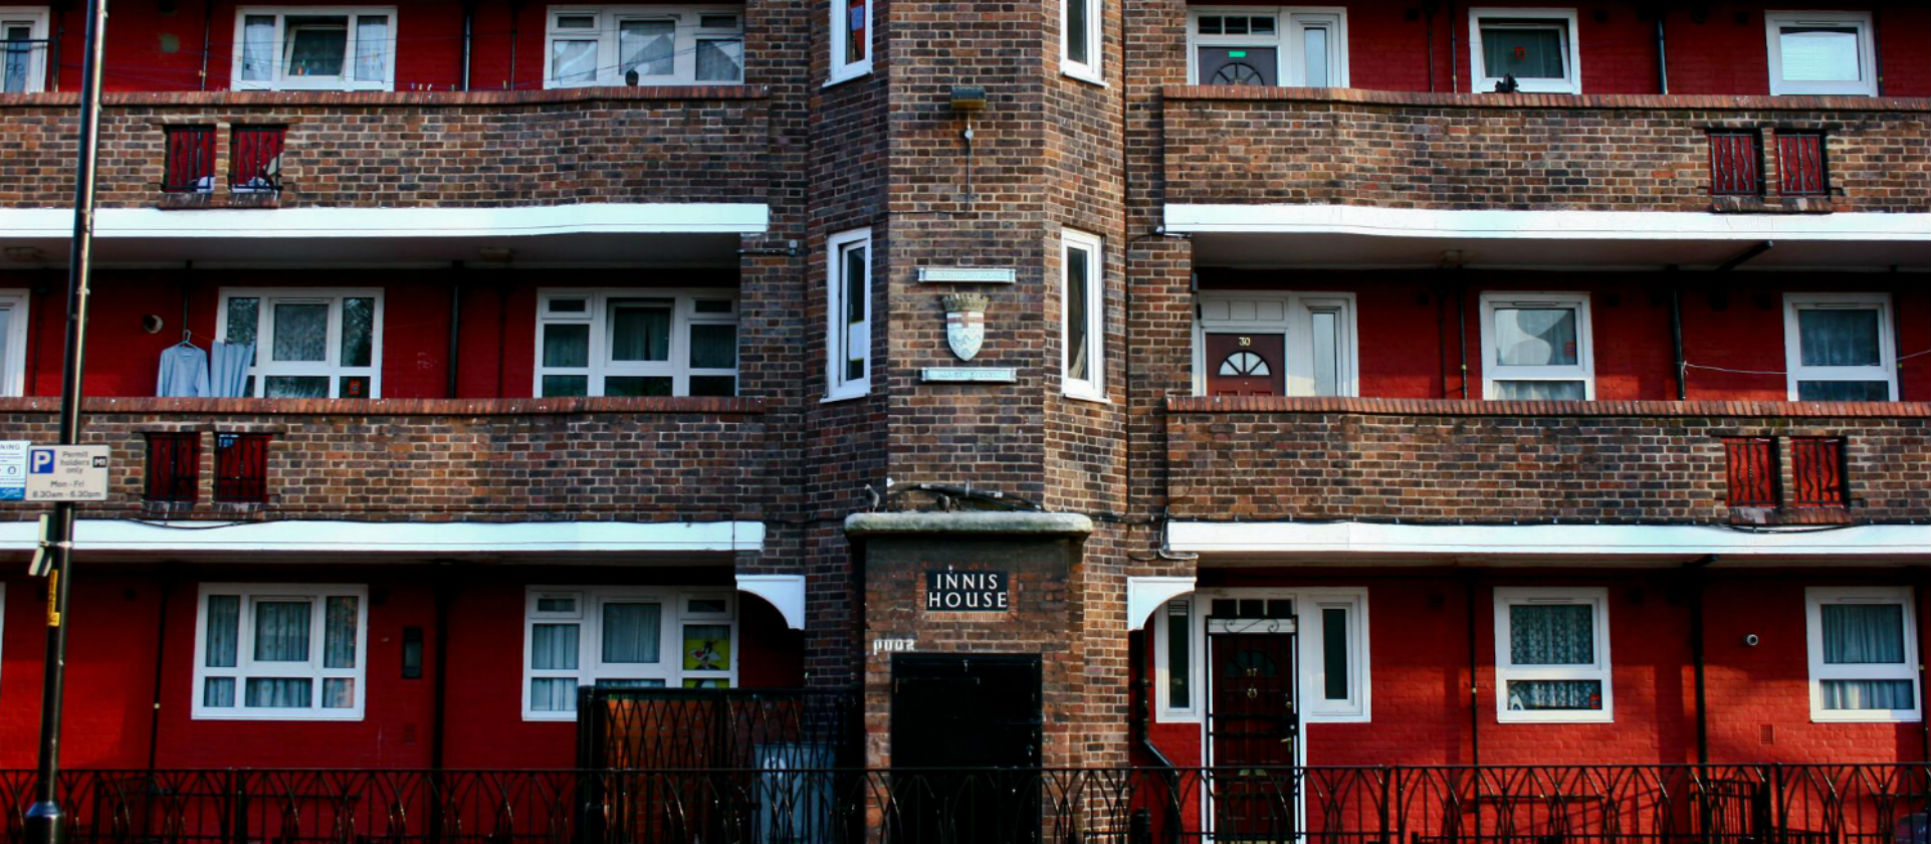 Housing estate in London.